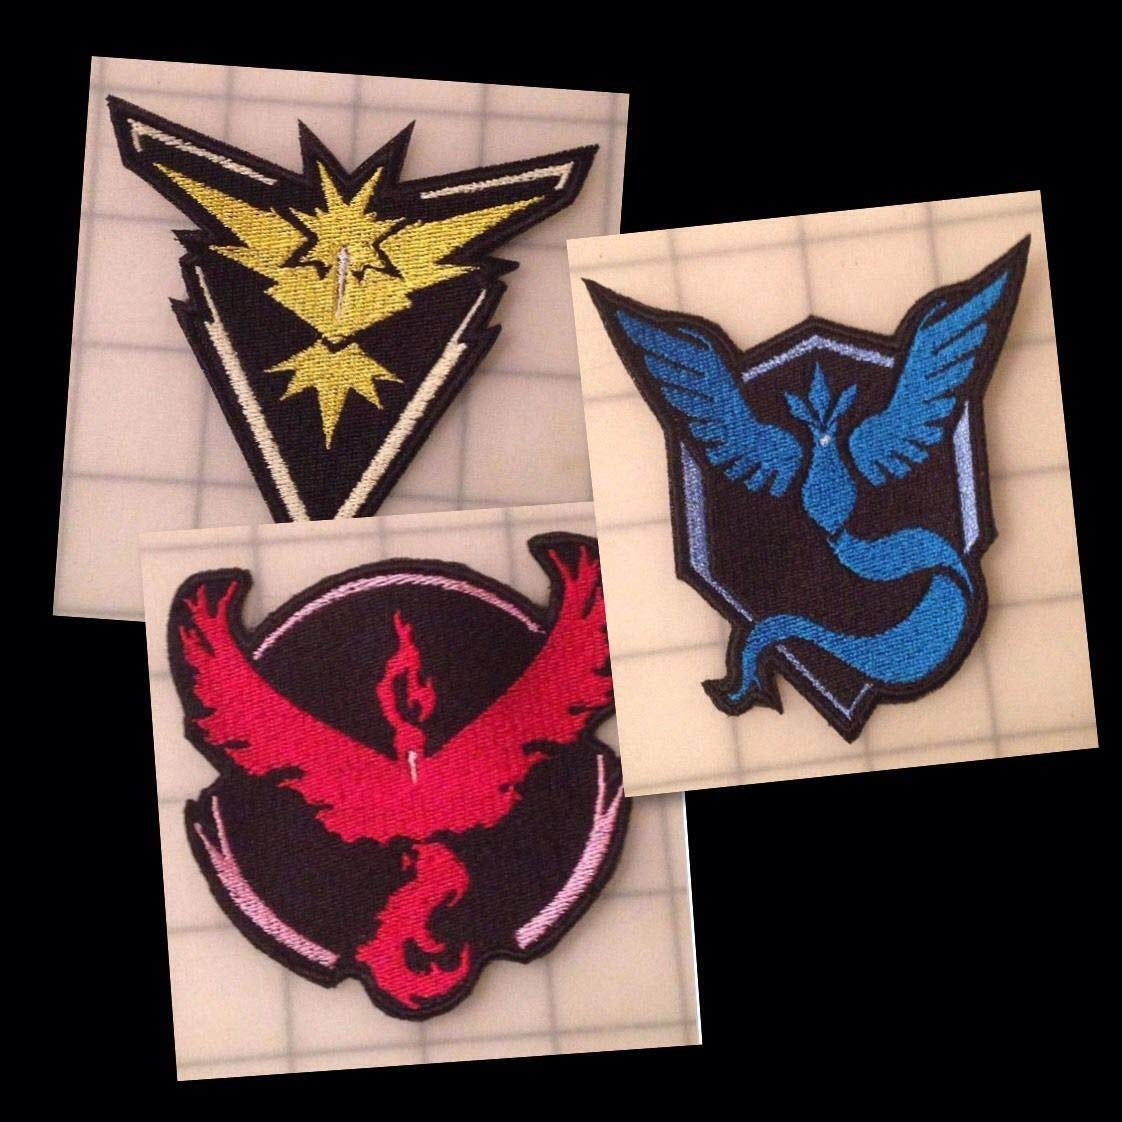 Embroidered Pokemon Go Team Mystic Valor Instinct Badge Logo Patch